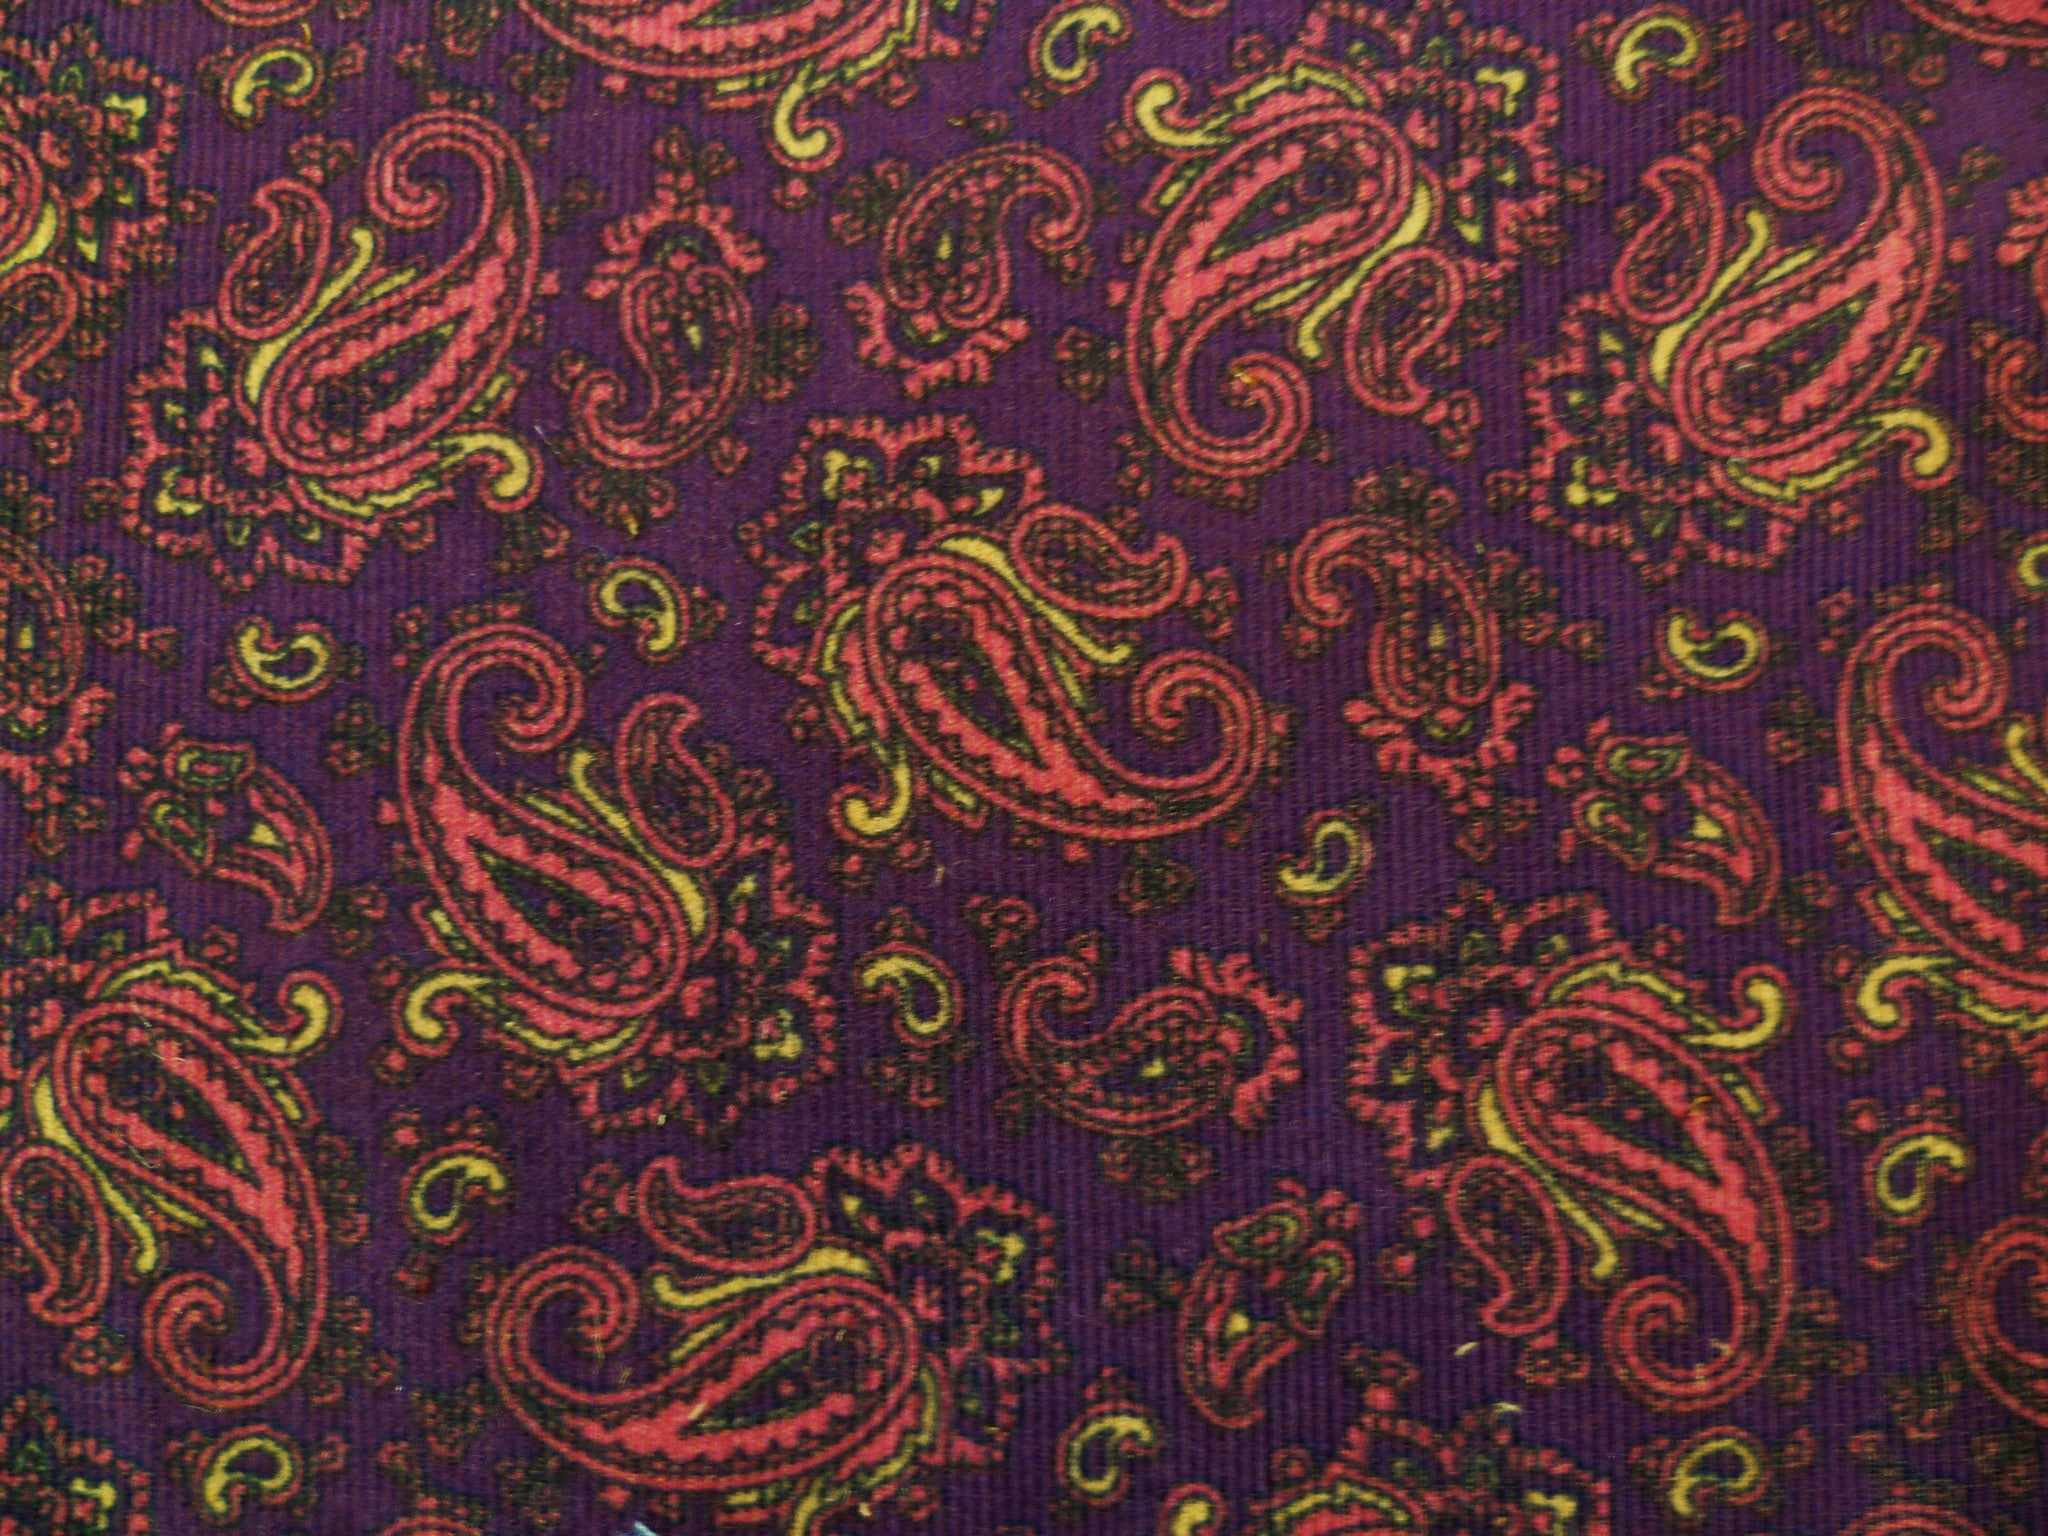 Purple, Beige, Pink and Black Paisley Patterned Cotton